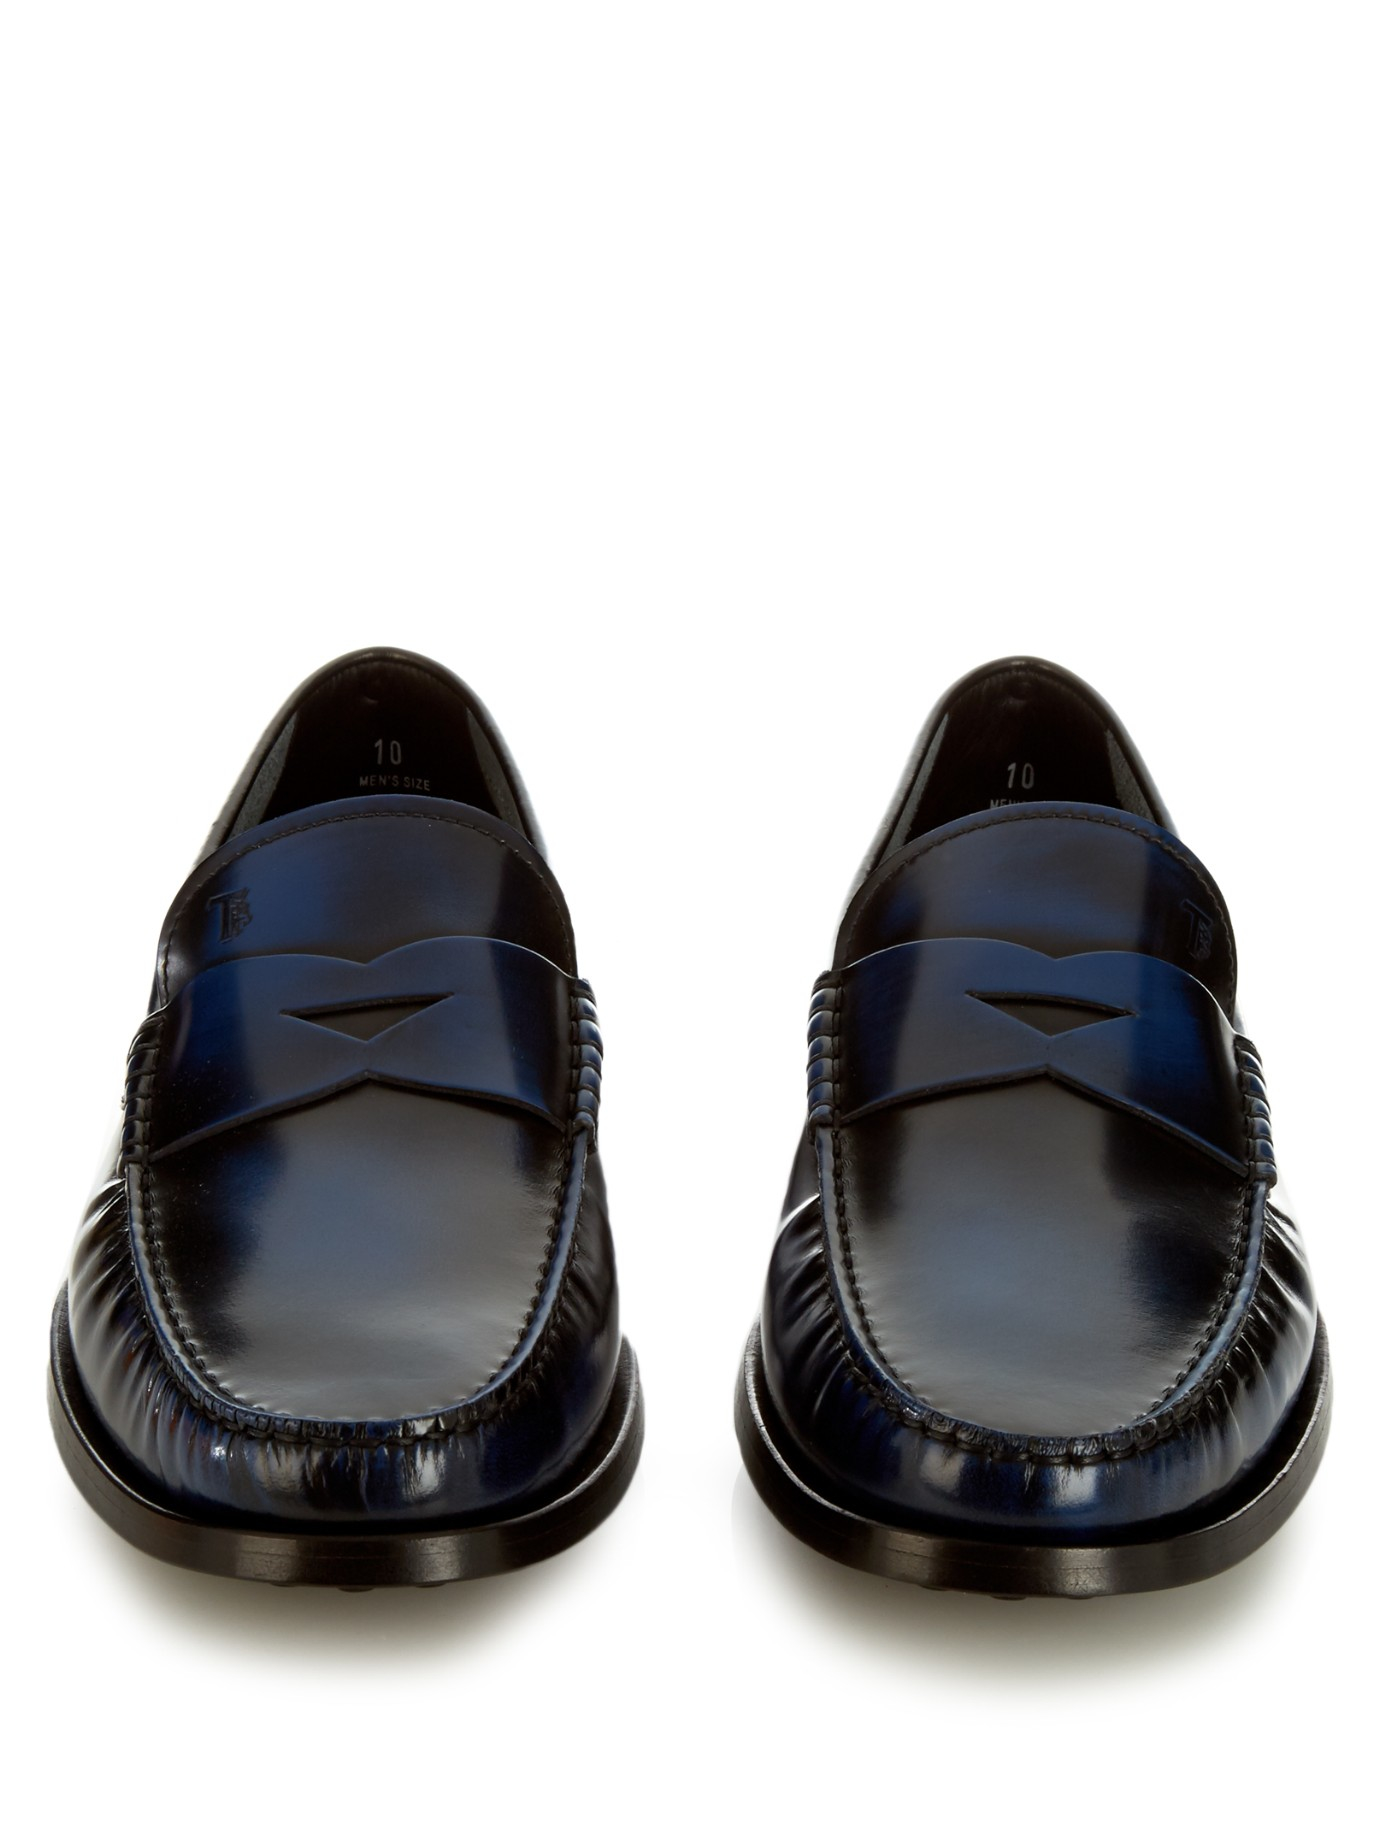 Lyst - Tod'S Spazzolato-leather Penny Loafers in Blue for Men